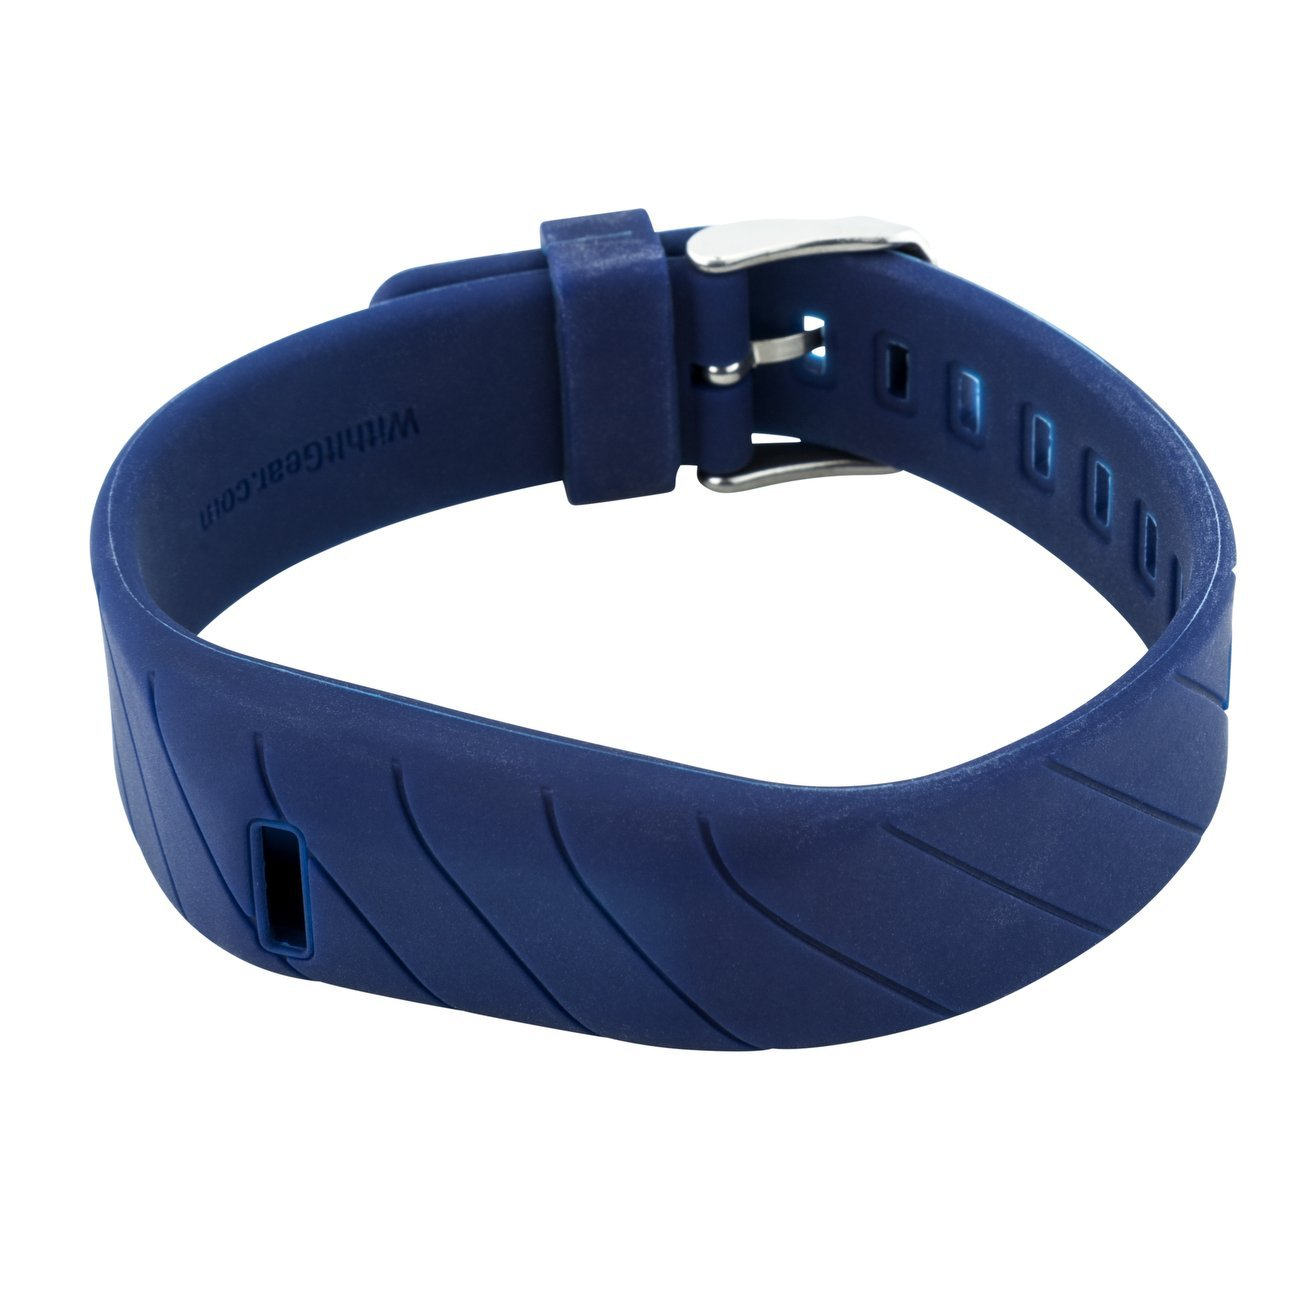 WITHit Fitbit Flex Wristband Replacement Image 1